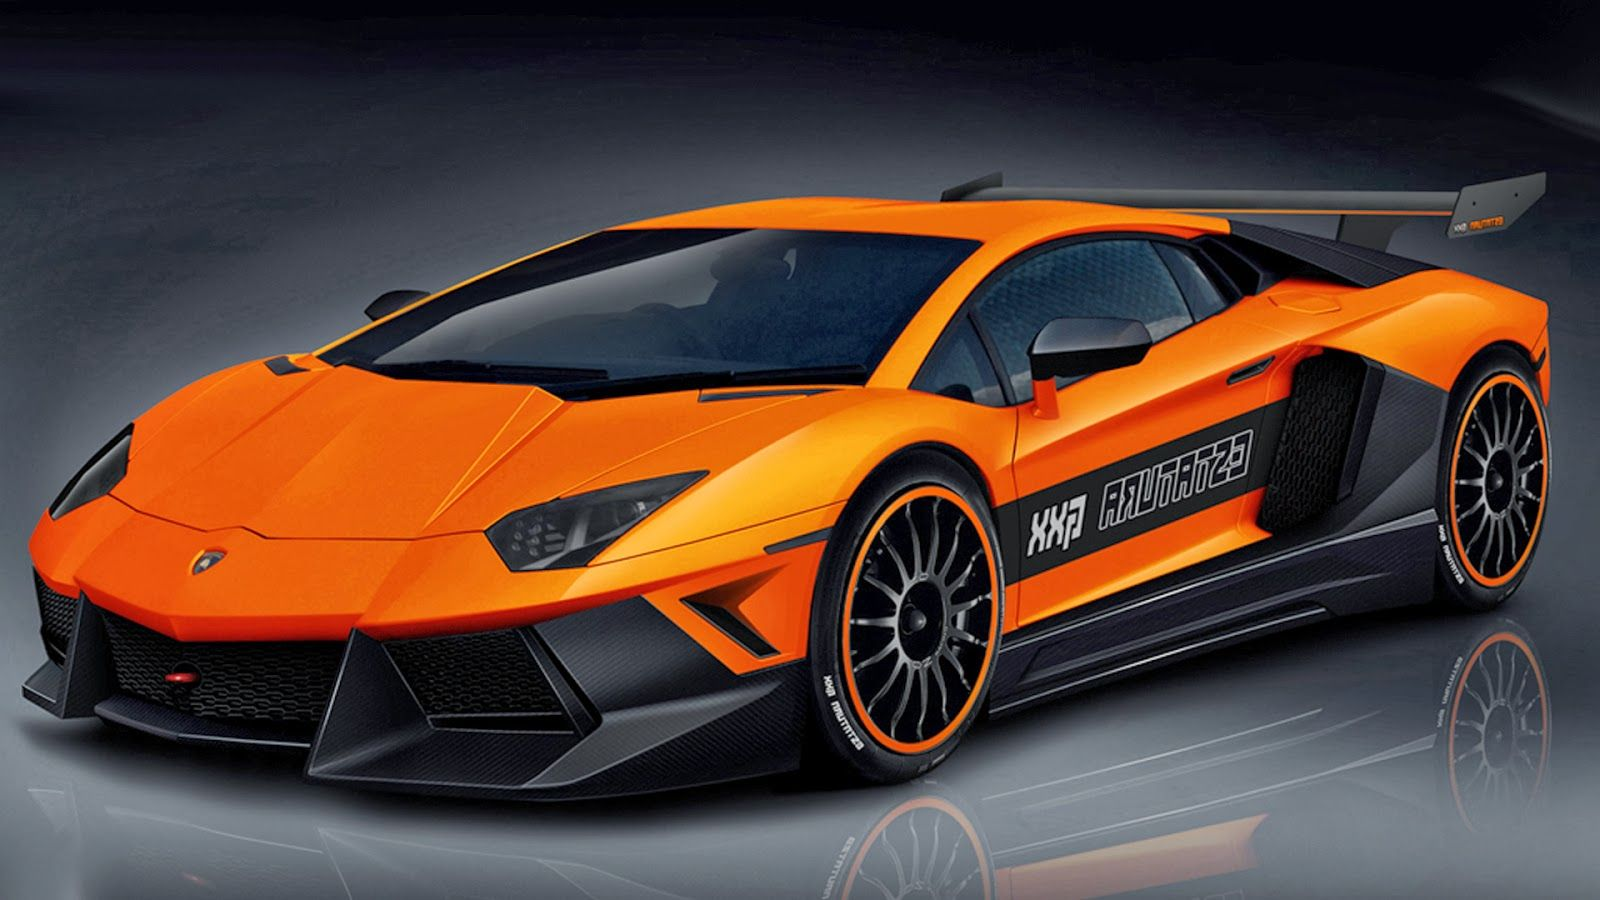 Lamborghini Hd Full Screen Wallpaper Phone For Desktop Background Archived  In Cars Category